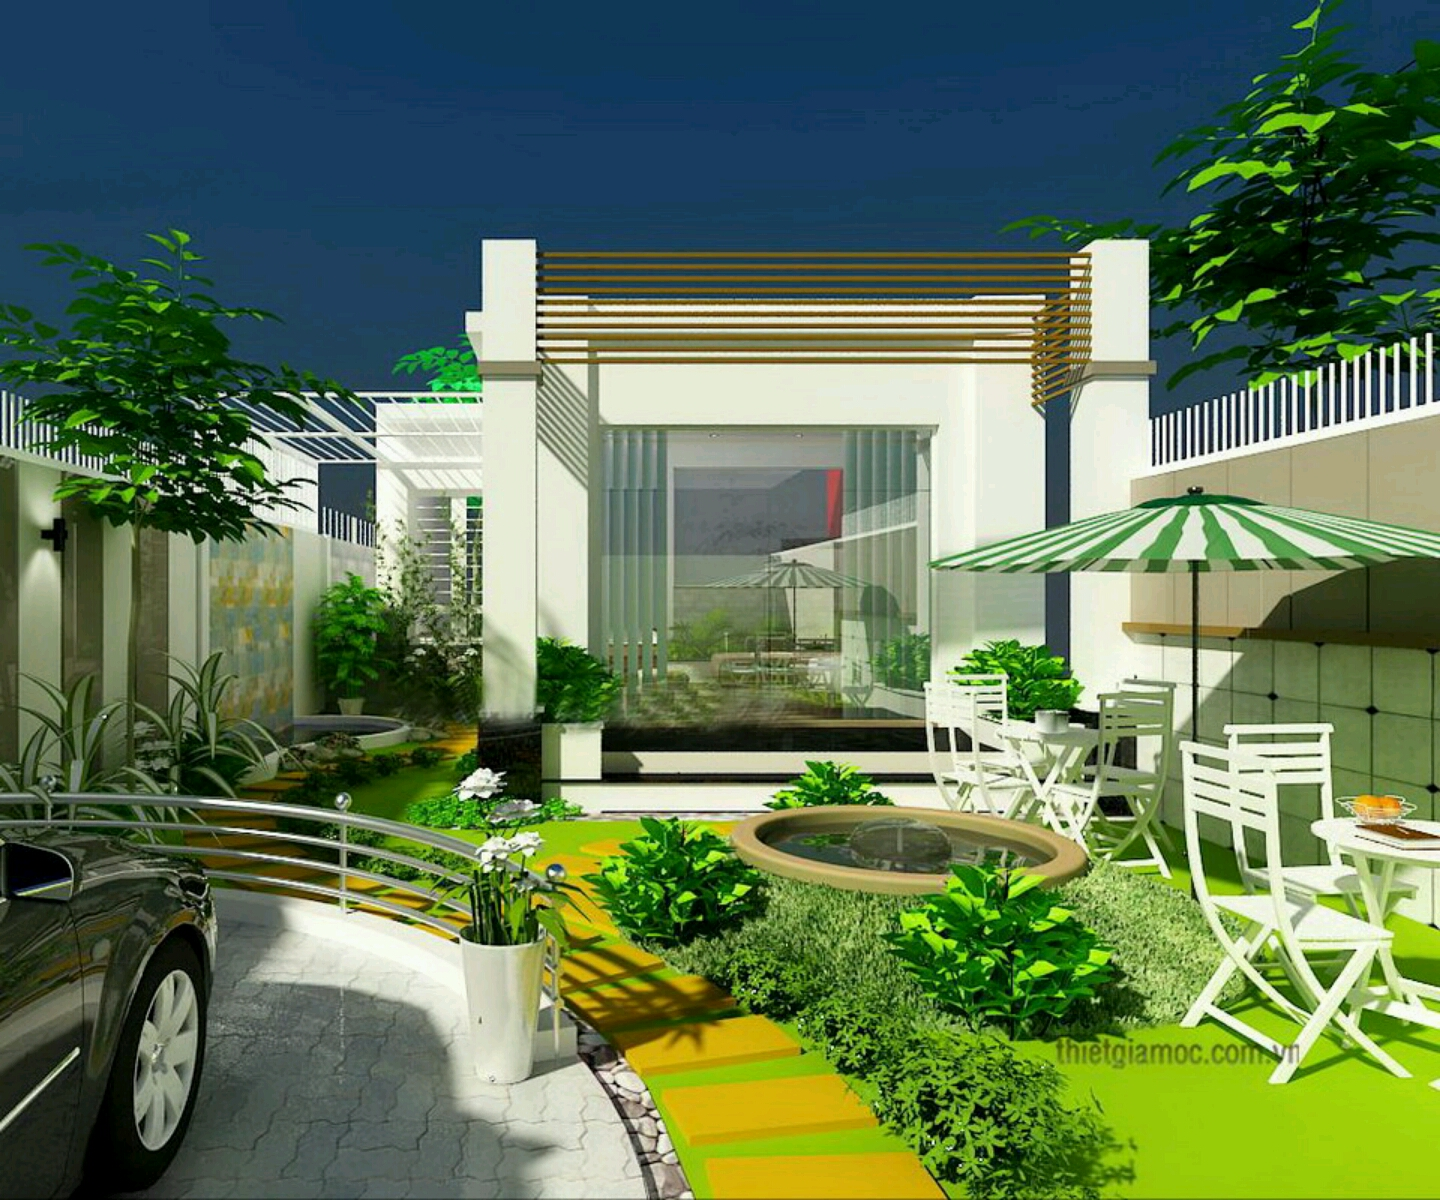 Modern homes beautiful garden designs ideas new home for Ideas for home gardens design